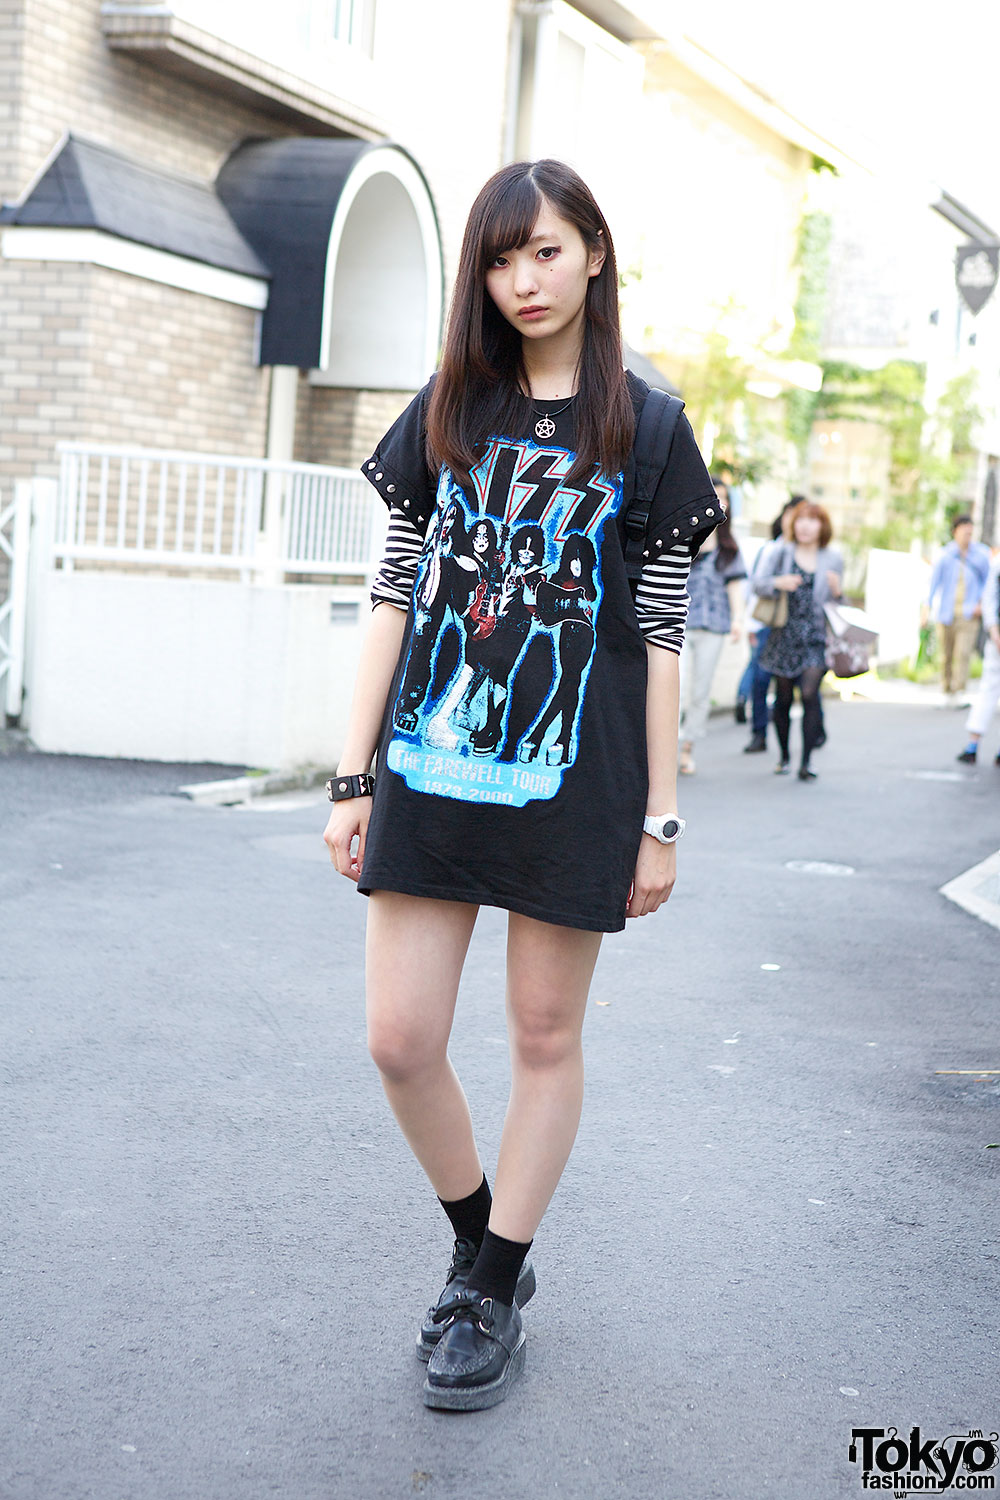 Kiss t-shirt in Harajuku